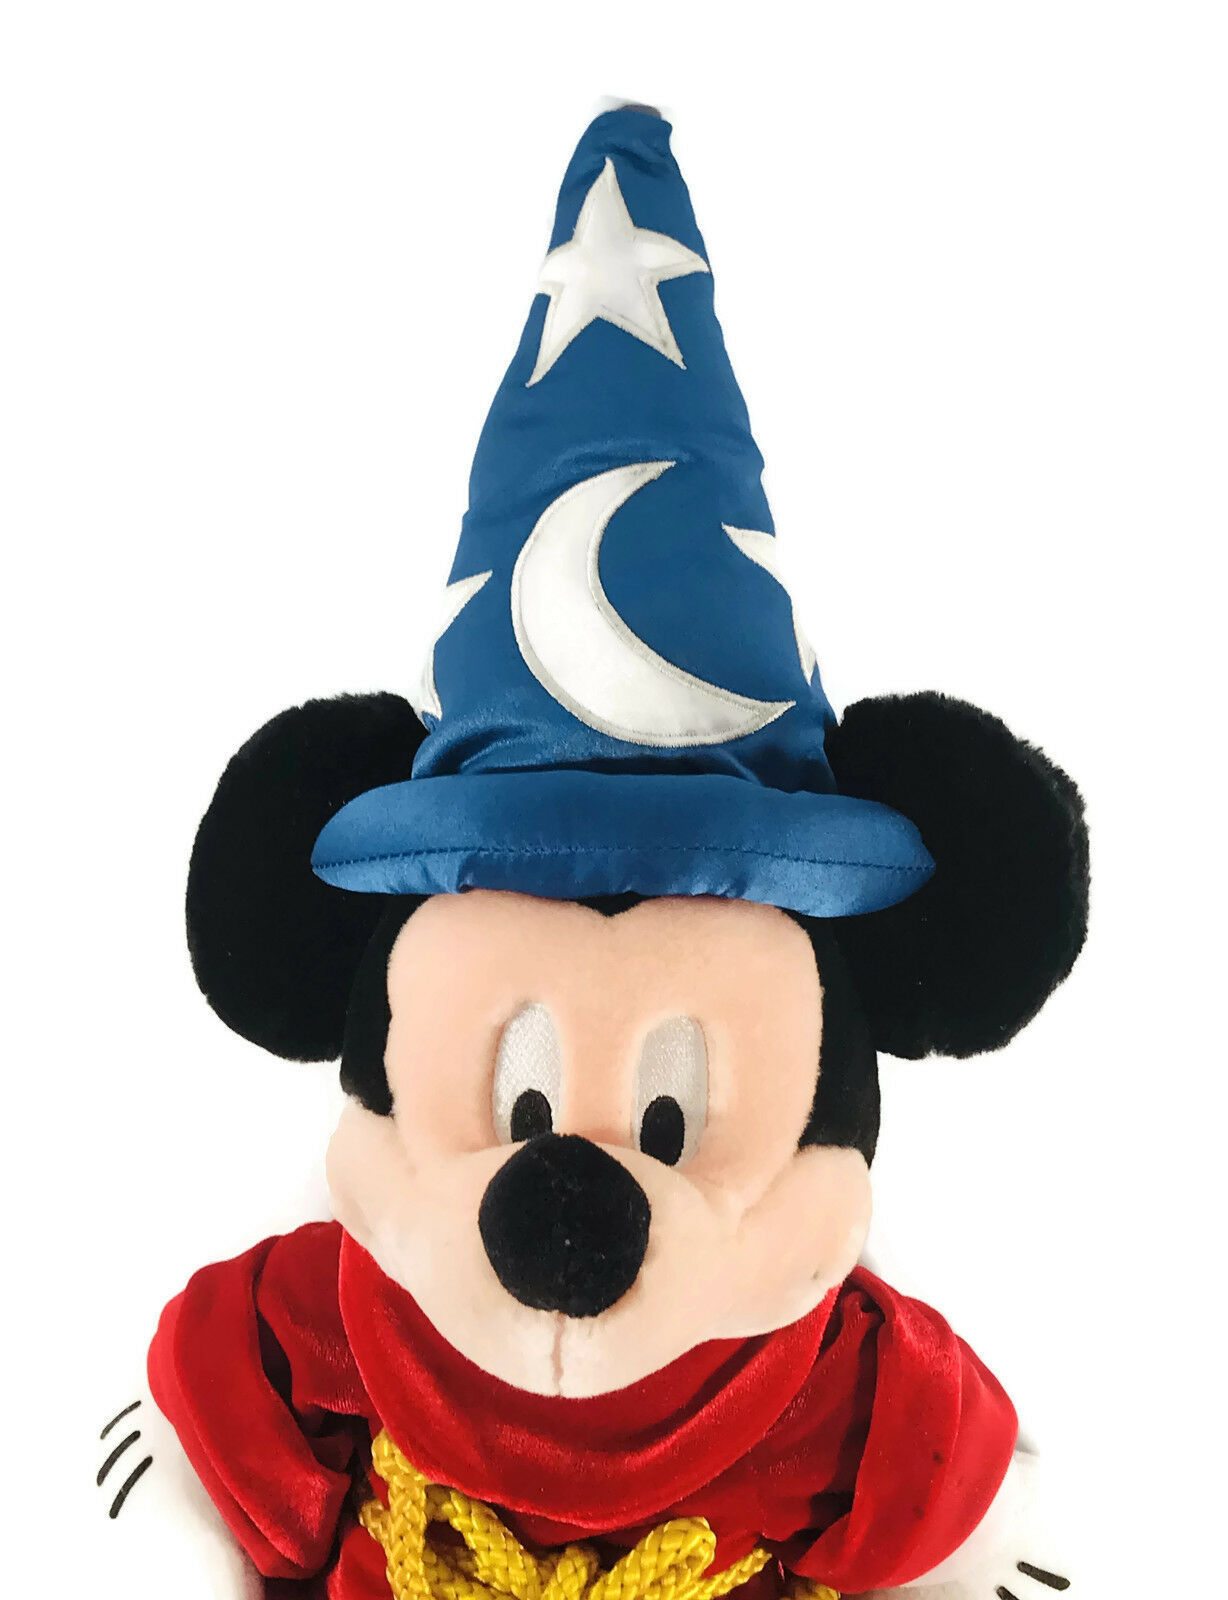 "Primary image for Mickey Mouse The Disney Store 19"" Sorcerer's Apprentice Fantasia Plush Stuffed"